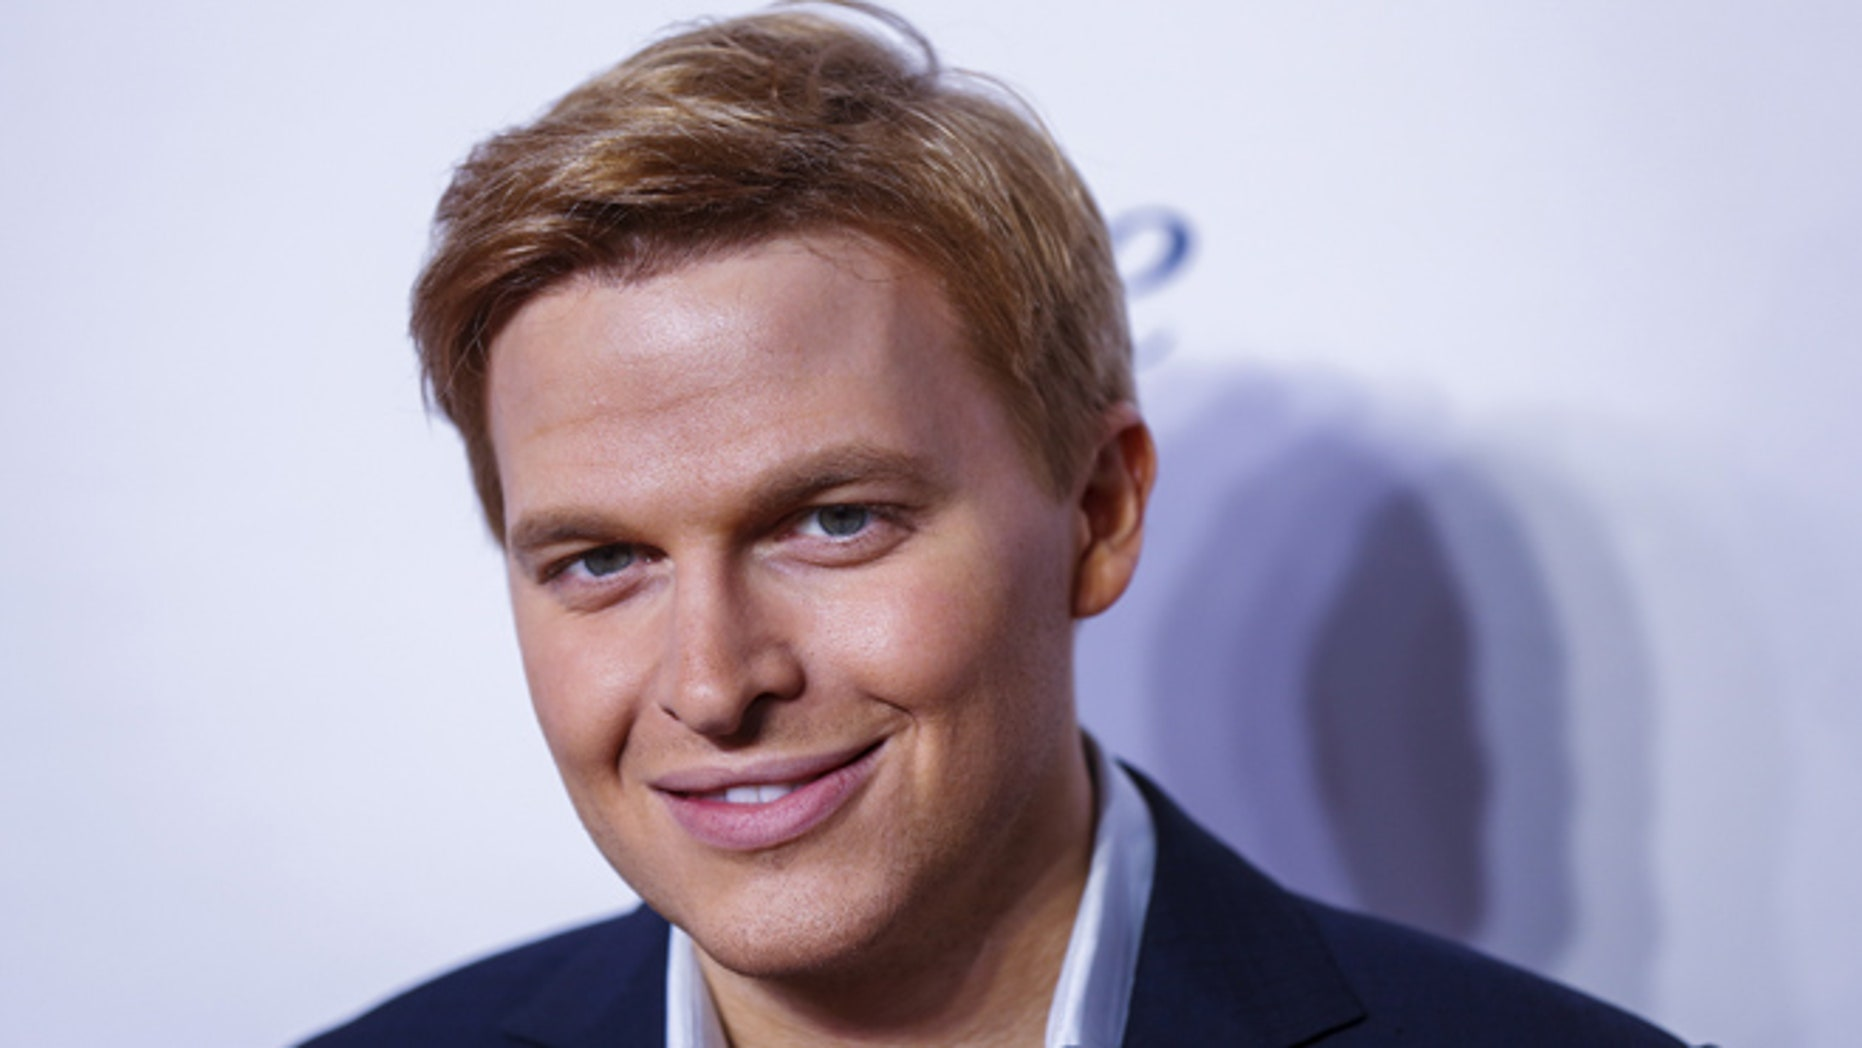 Ronan Farrow has criticized NBC News for refusing to run his reporting that would have uncovered Harvey Weinstein as a sexual predator months before the disgraced Hollywood mogul was exposed.